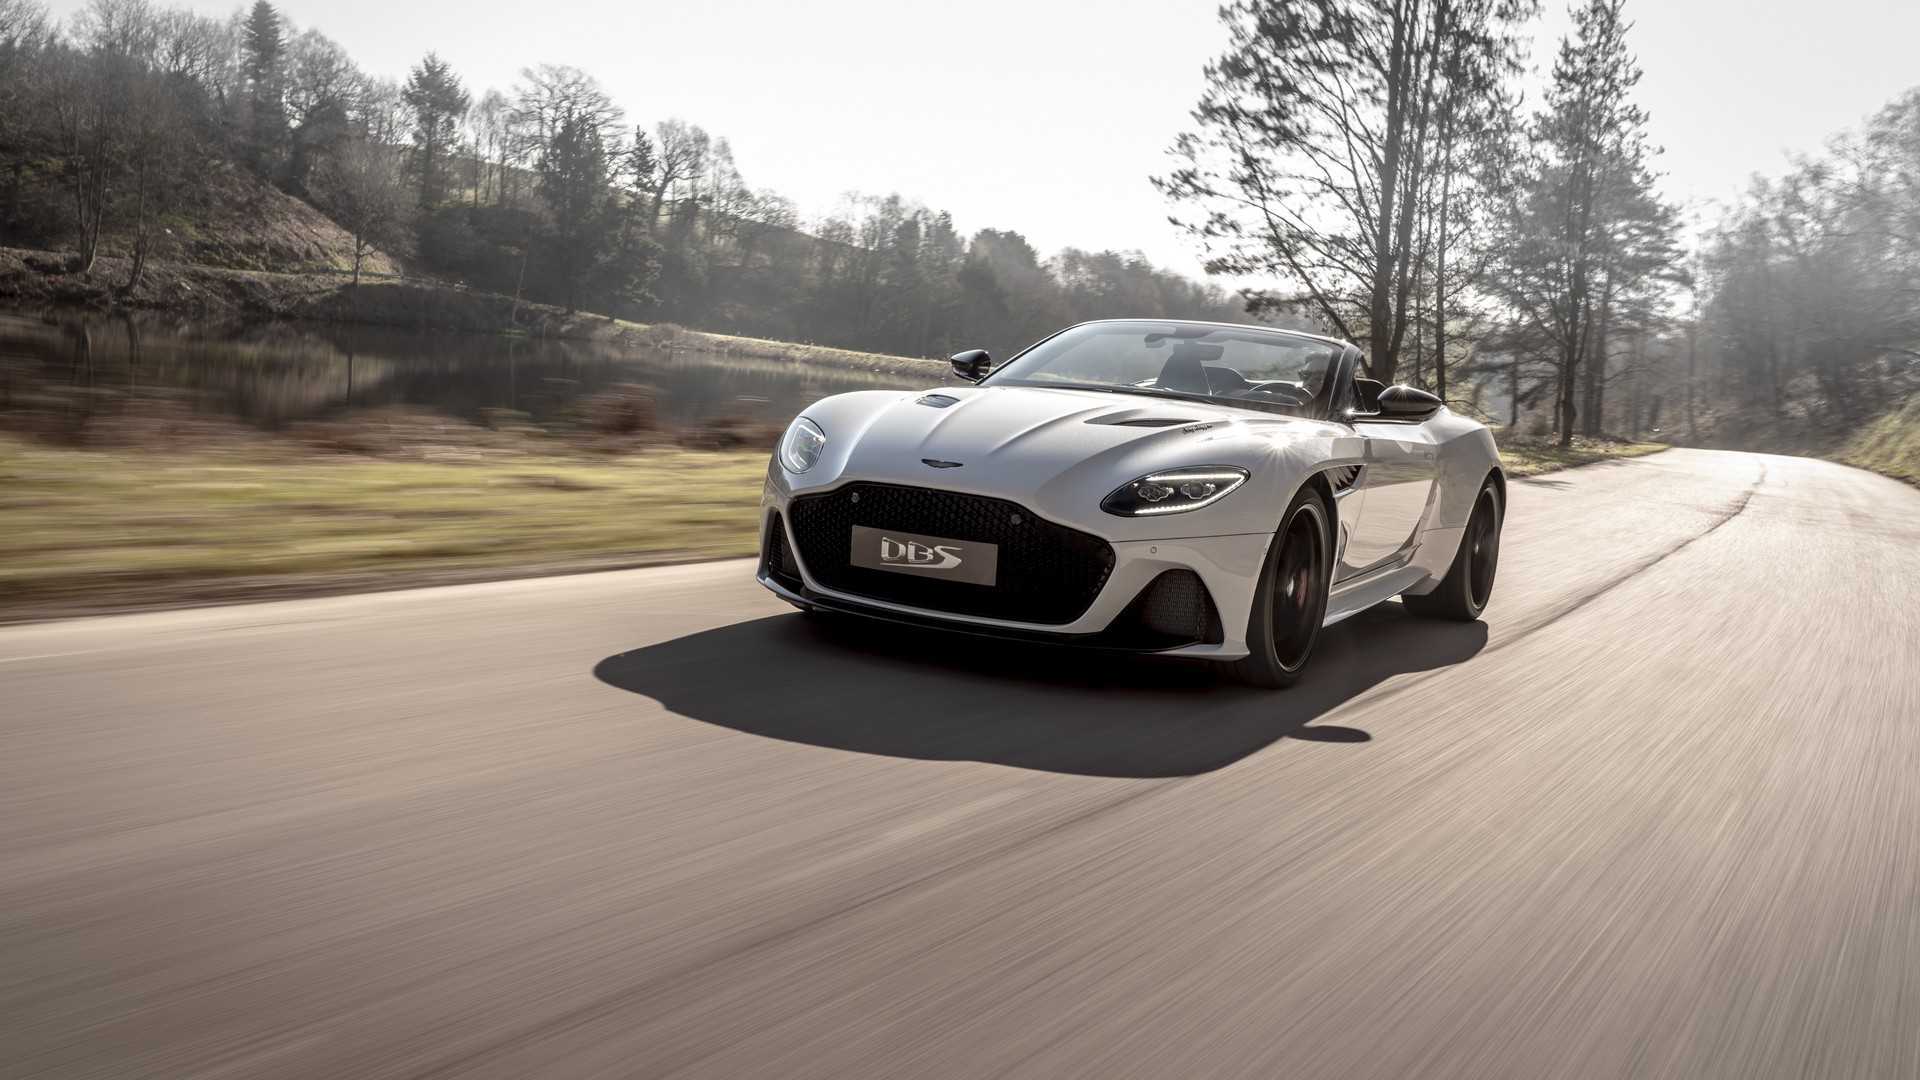 2019 Aston Martin DBS Superleggera Volante Front Three-Quarter Wallpapers (1)